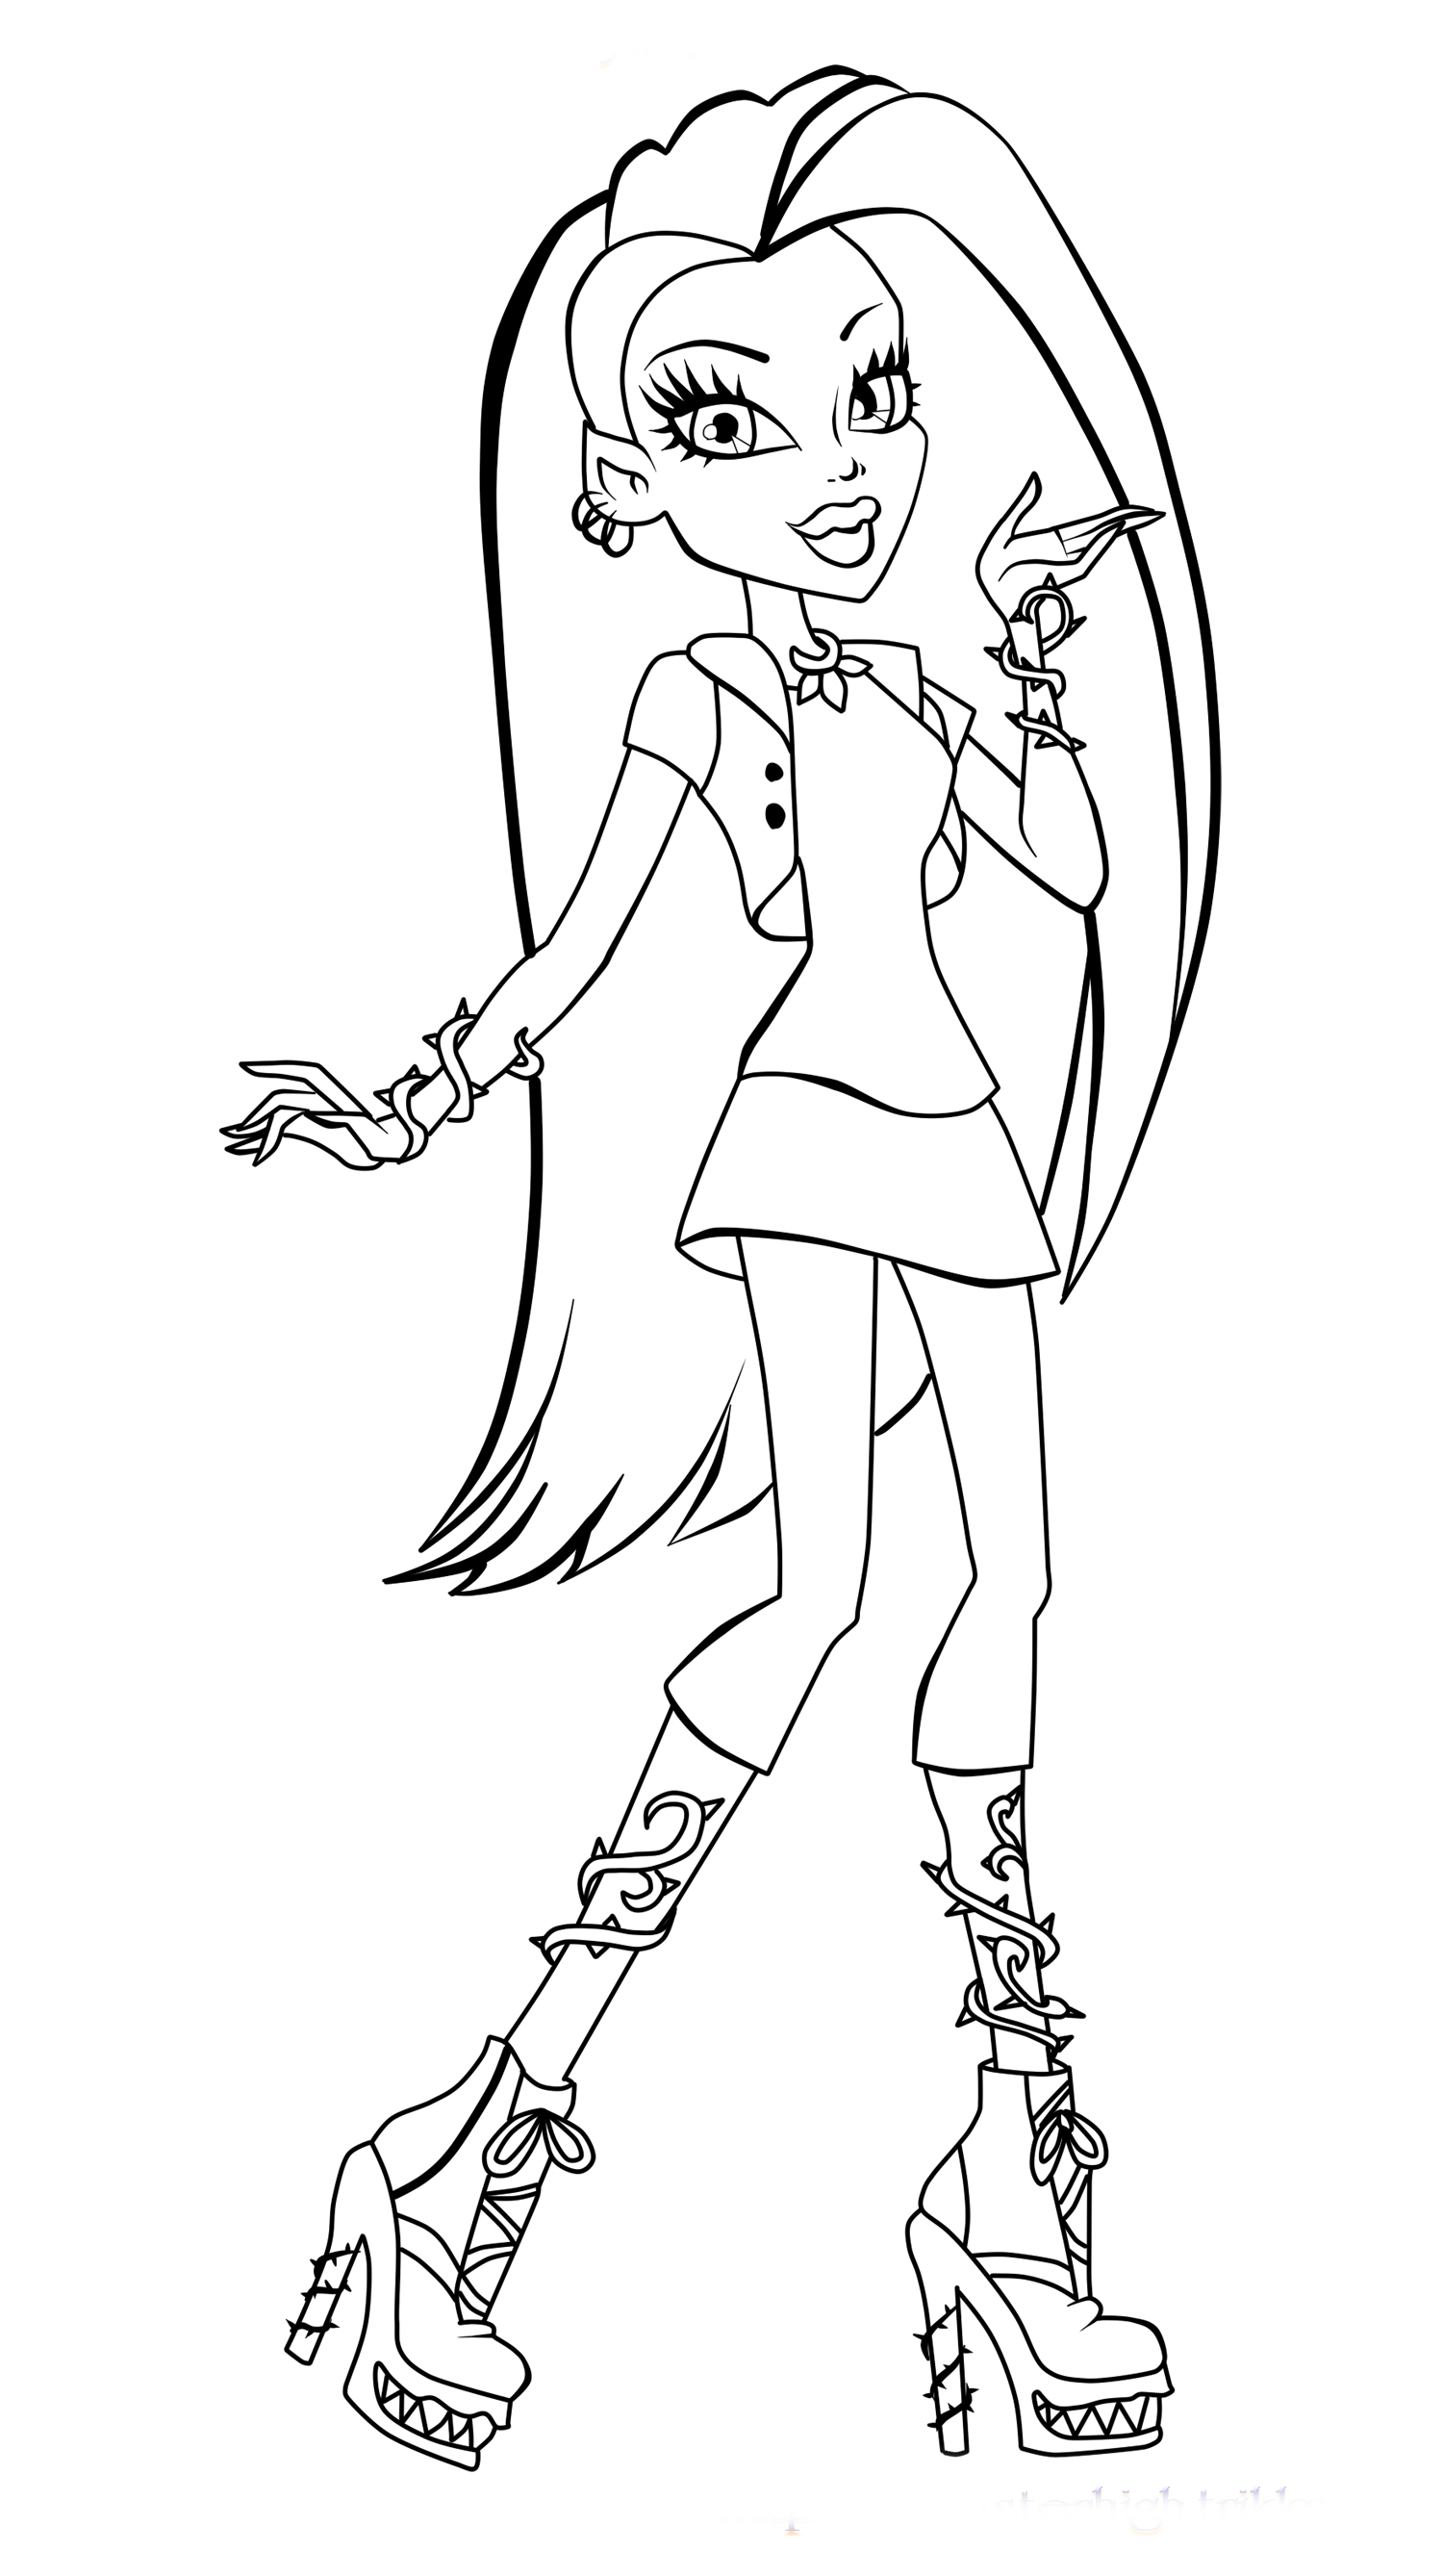 Monster high coloring pages 2018 z31 coloring page for Monster high color pages free